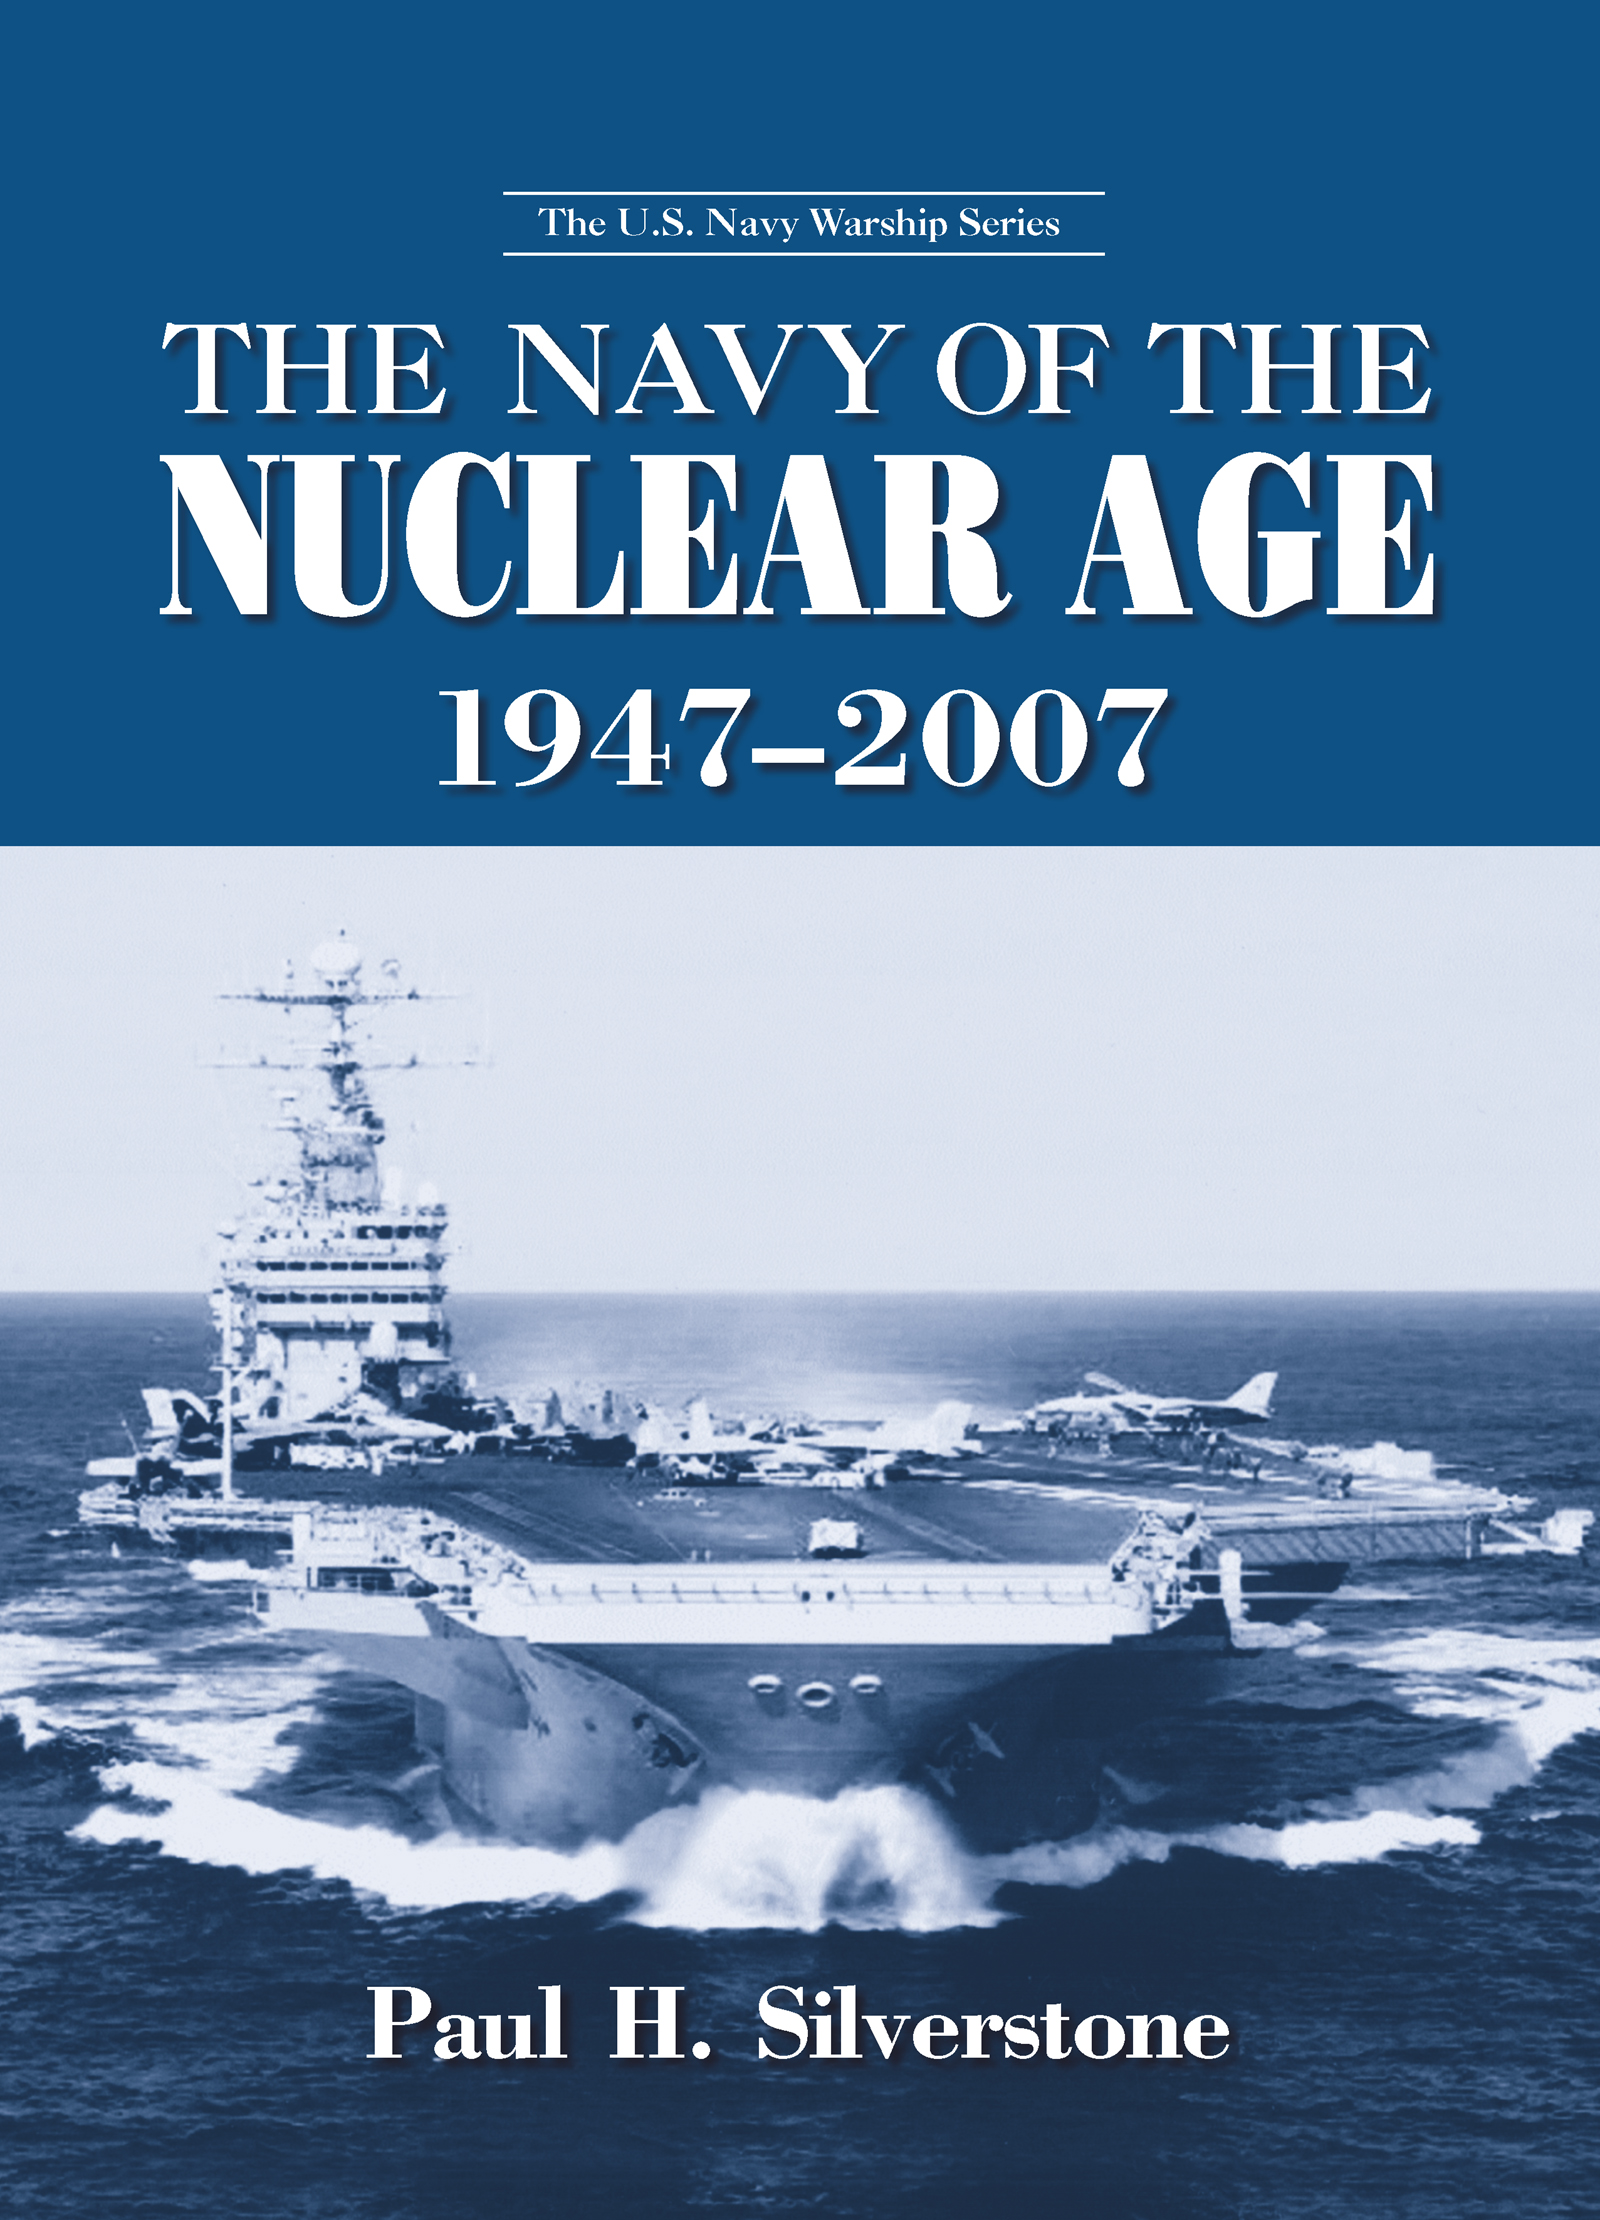 The Navy of the Nuclear Age, 1947-2007 book cover